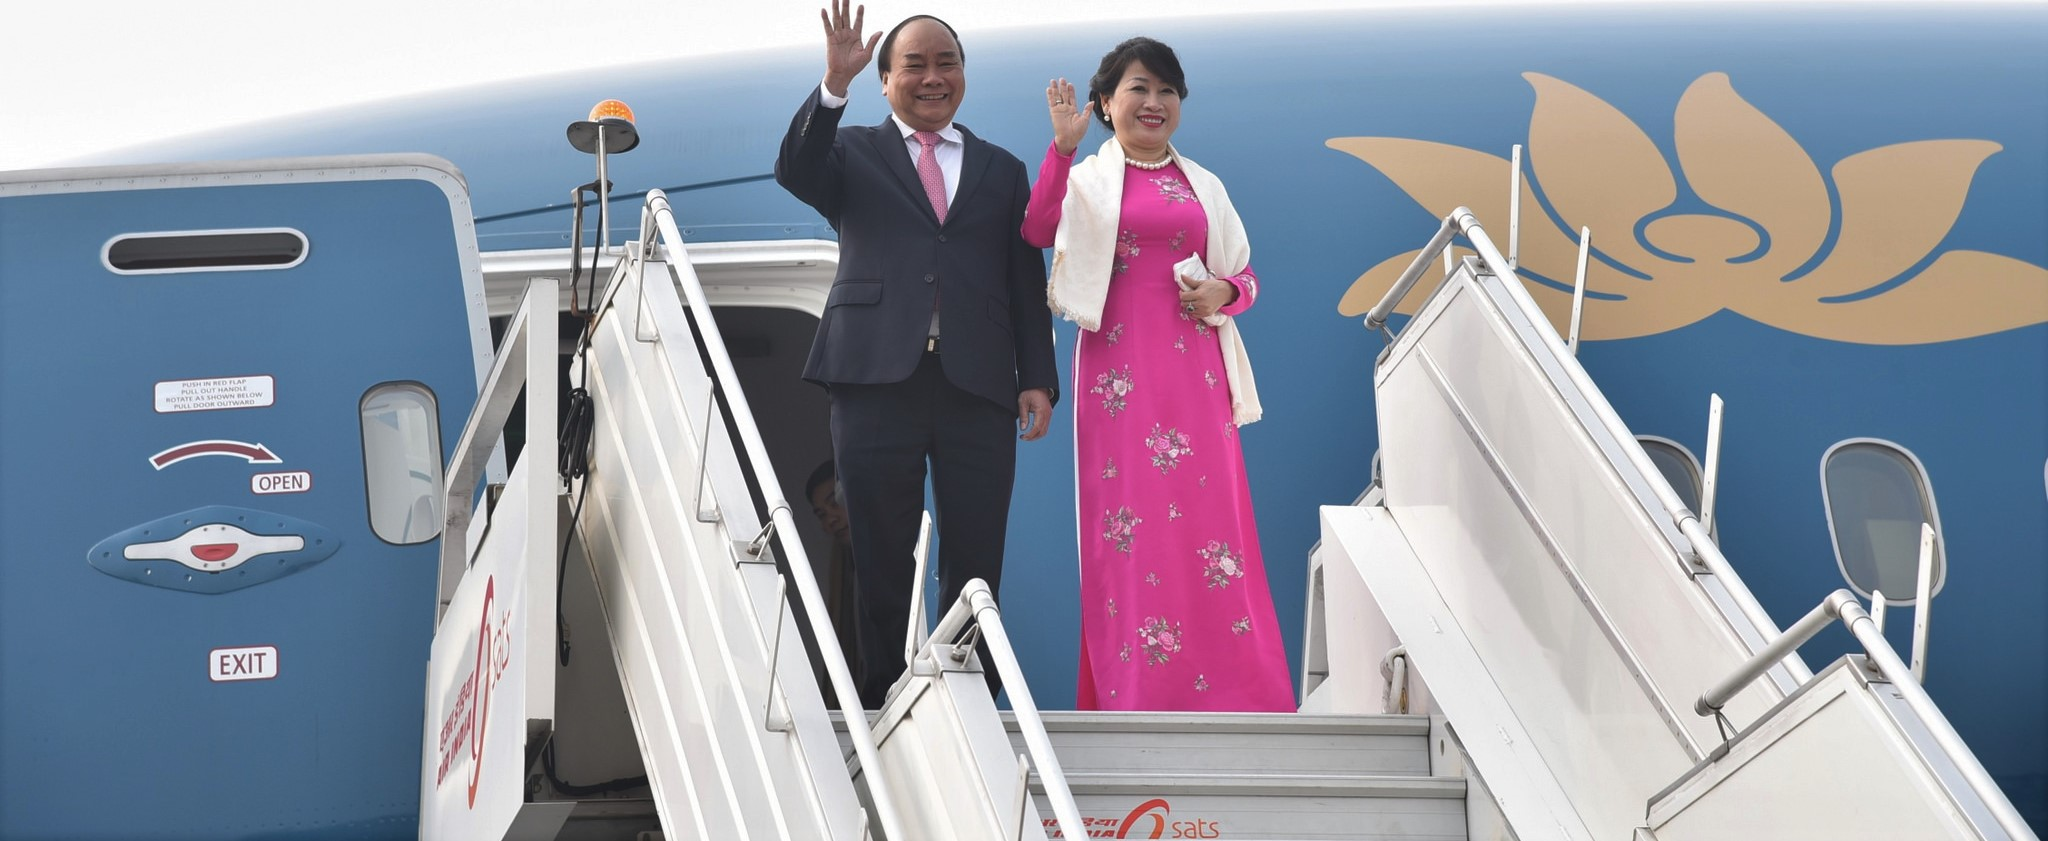 Vietnamese Prime Minister Nguyễn Xuân Phúc arrives in India for the ASEAN-India Commemorative Summit, January 2018 (Photo: MEAphotogallery/Flickr)